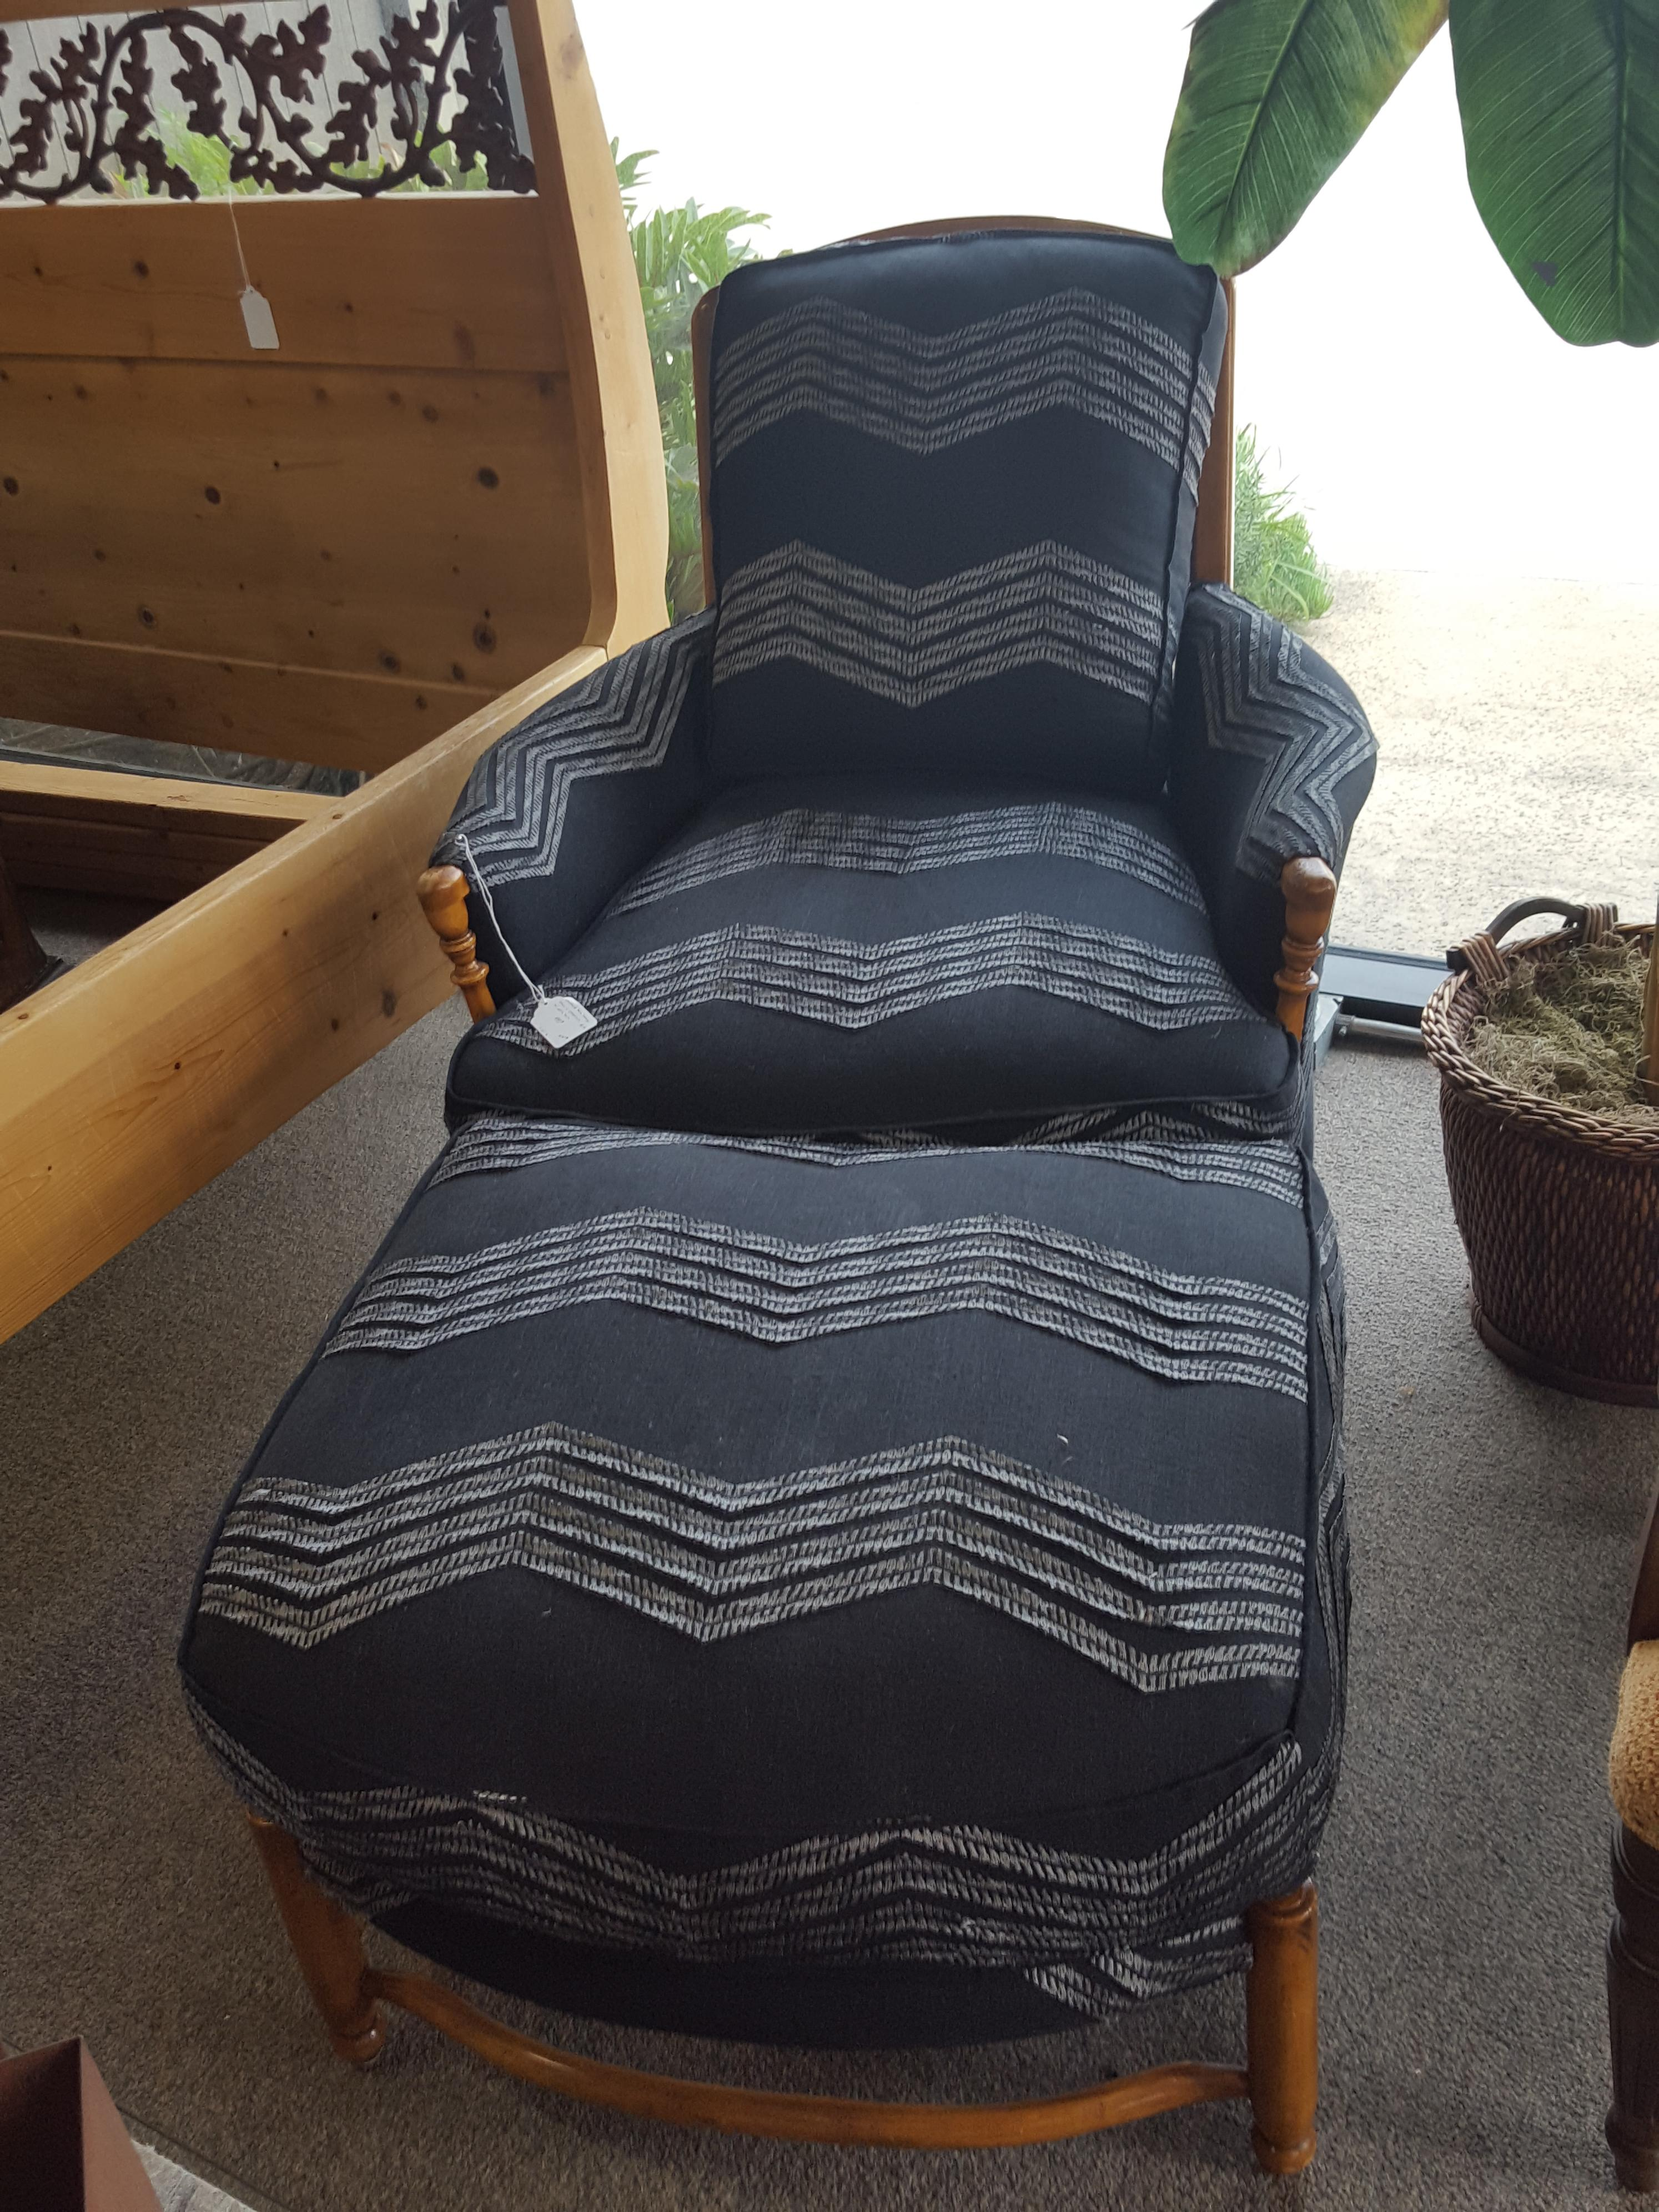 Upholstered lounge chair with matching Chairs, Benches, Stools Price: $495.00